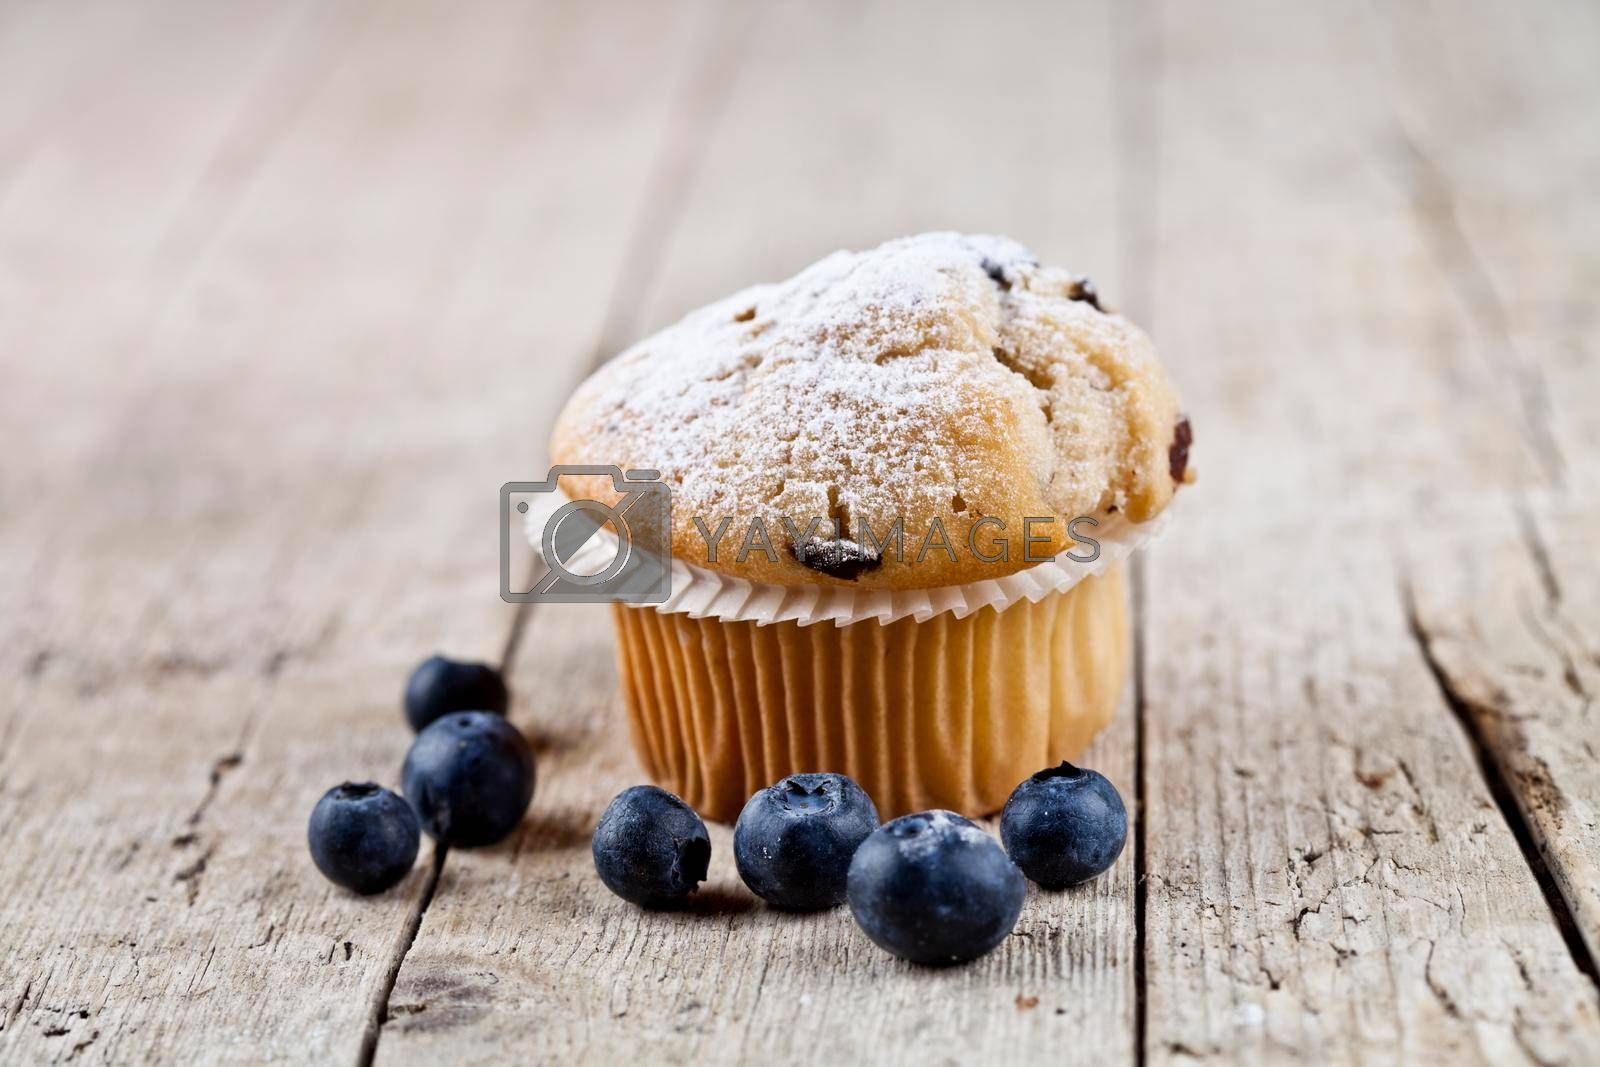 Fresh baked homemade muffin with sugar power and blueberries on rustic wooden table background.